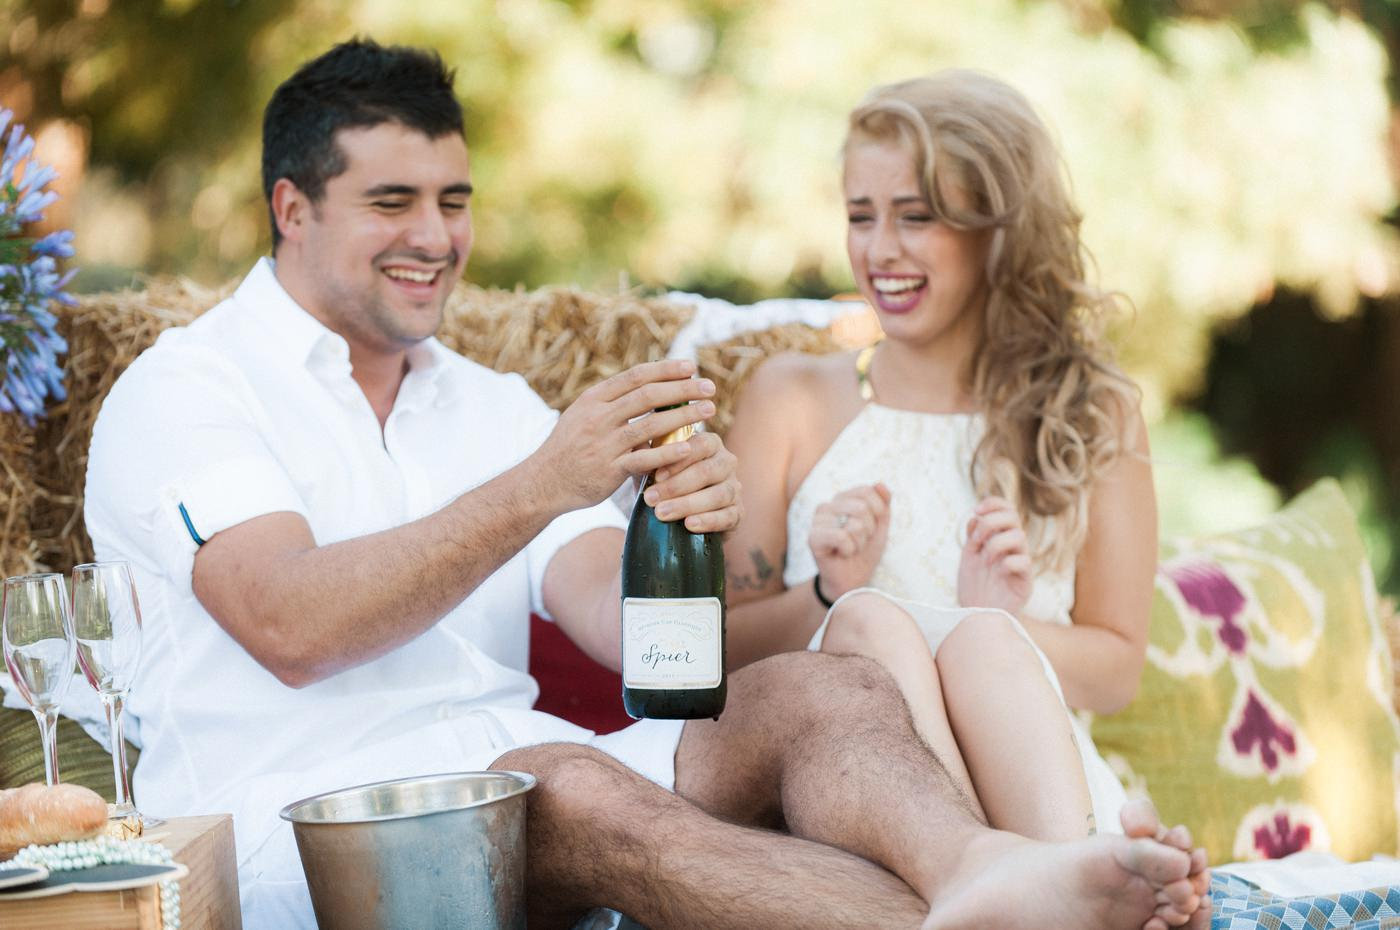 Engagement photography at Spier Wine Farm